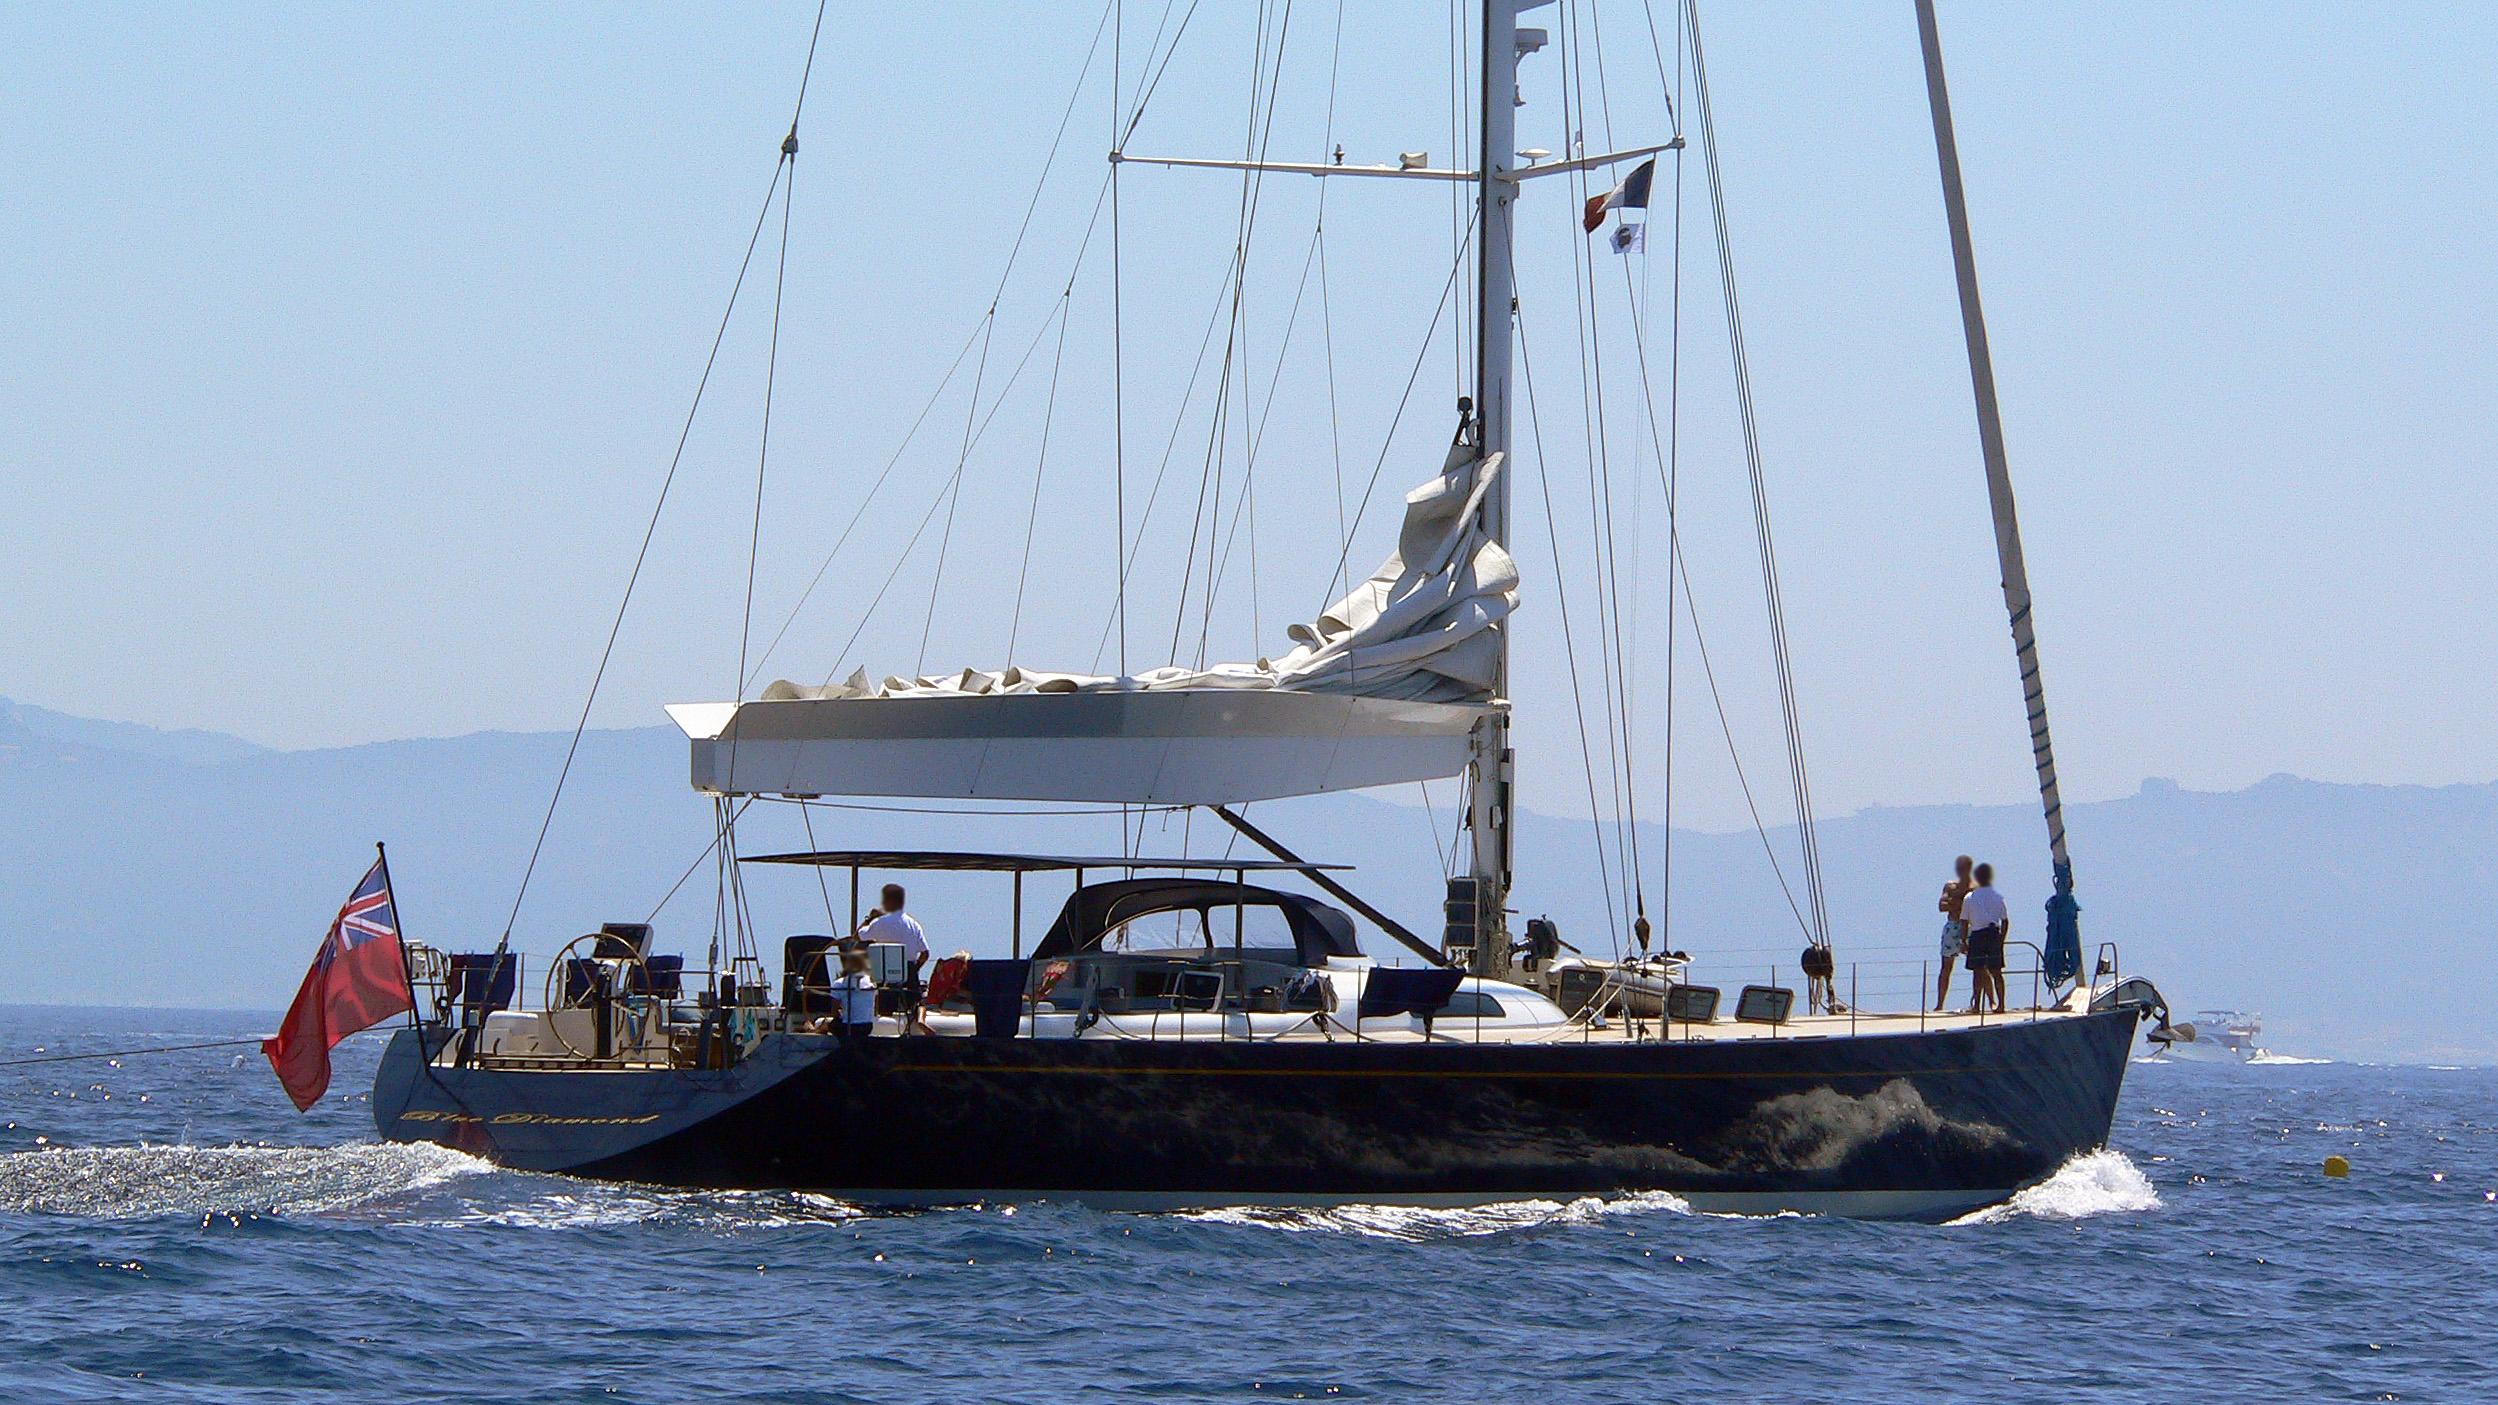 blue-diamond-sailing-yacht-h2o-2004-30m-cruising-stern